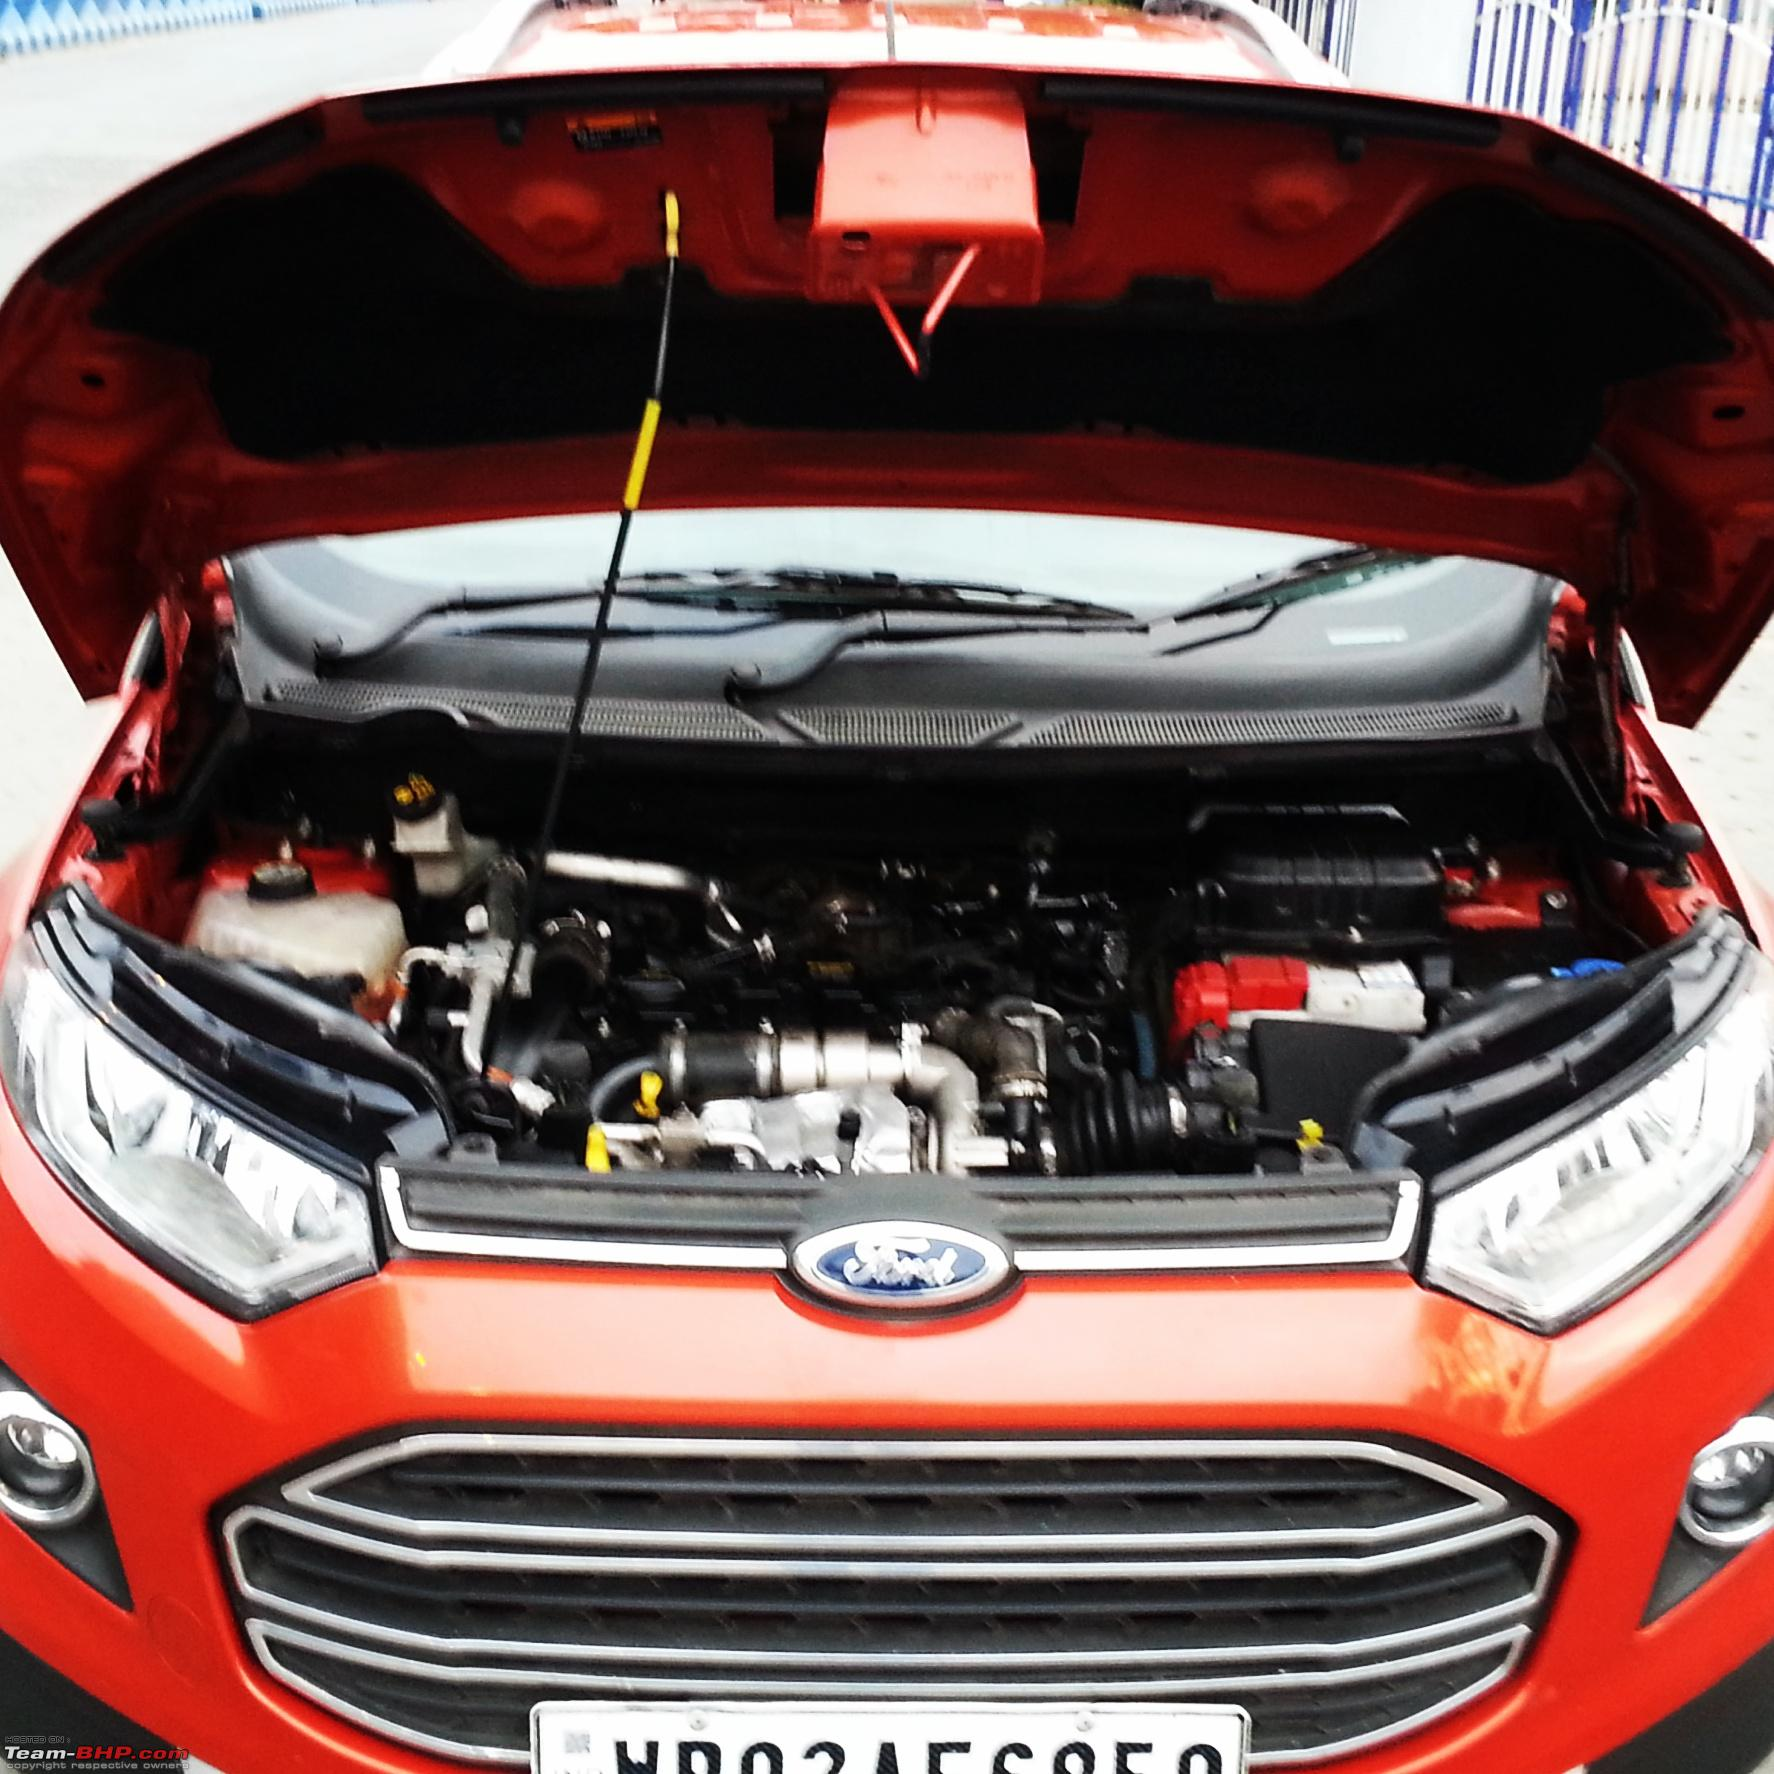 Ford Ecosport Official Review Page 623 Team Bhp